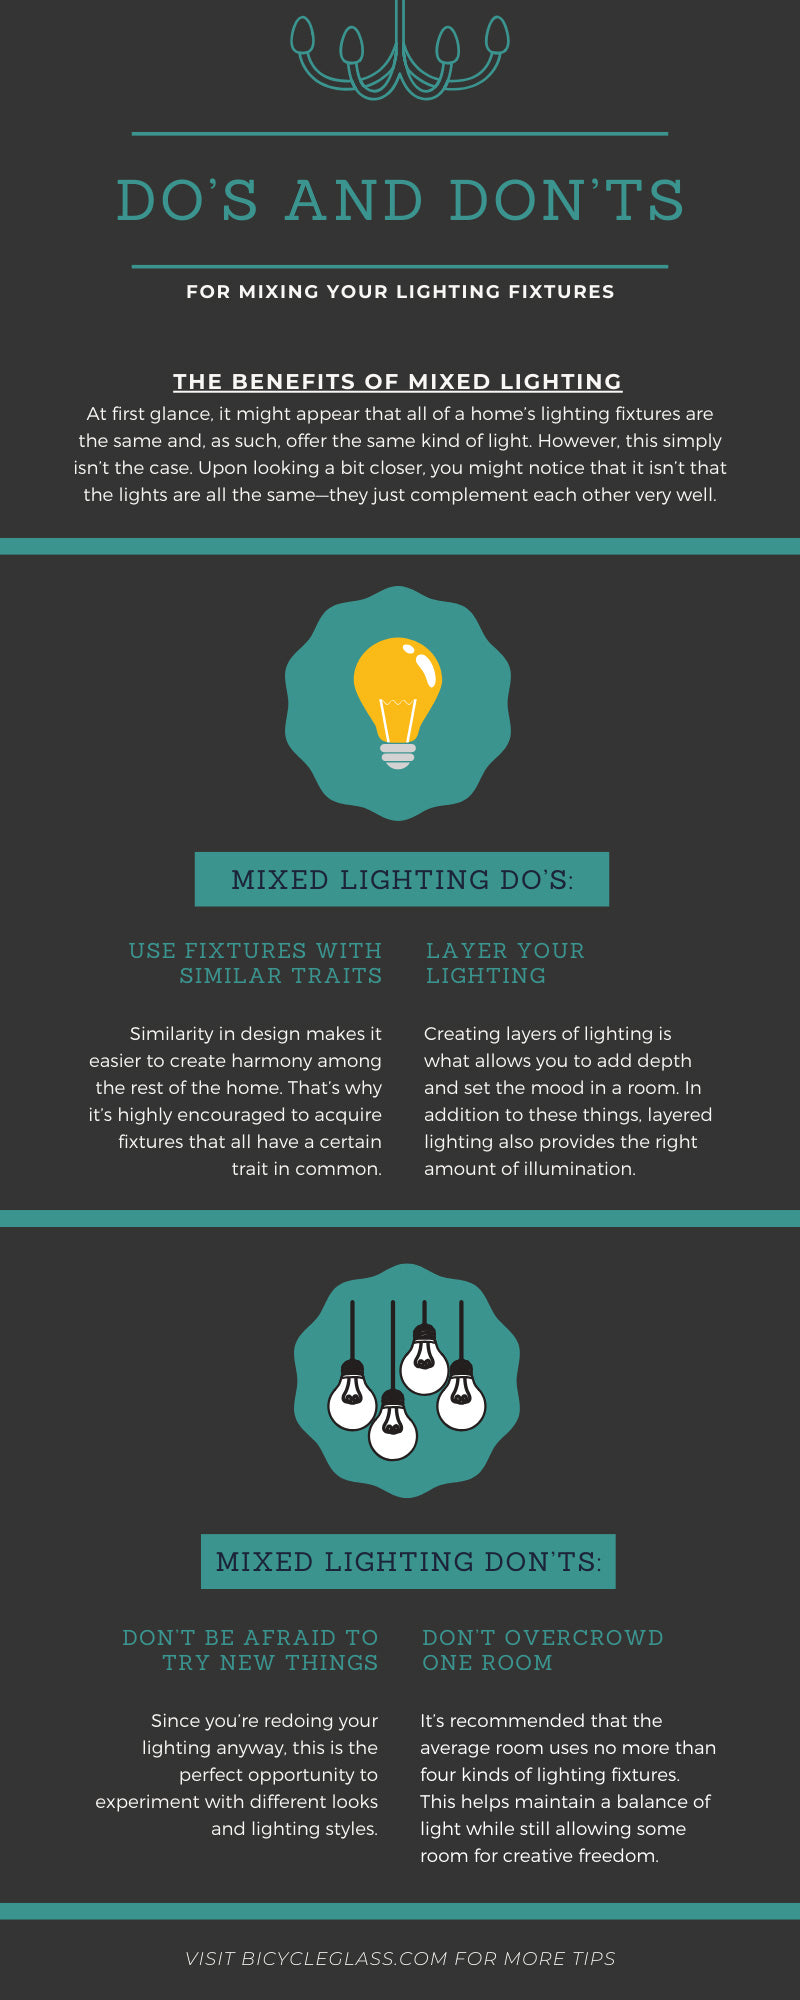 Do's and Don'ts for Mixing Your Lighting Fixtures